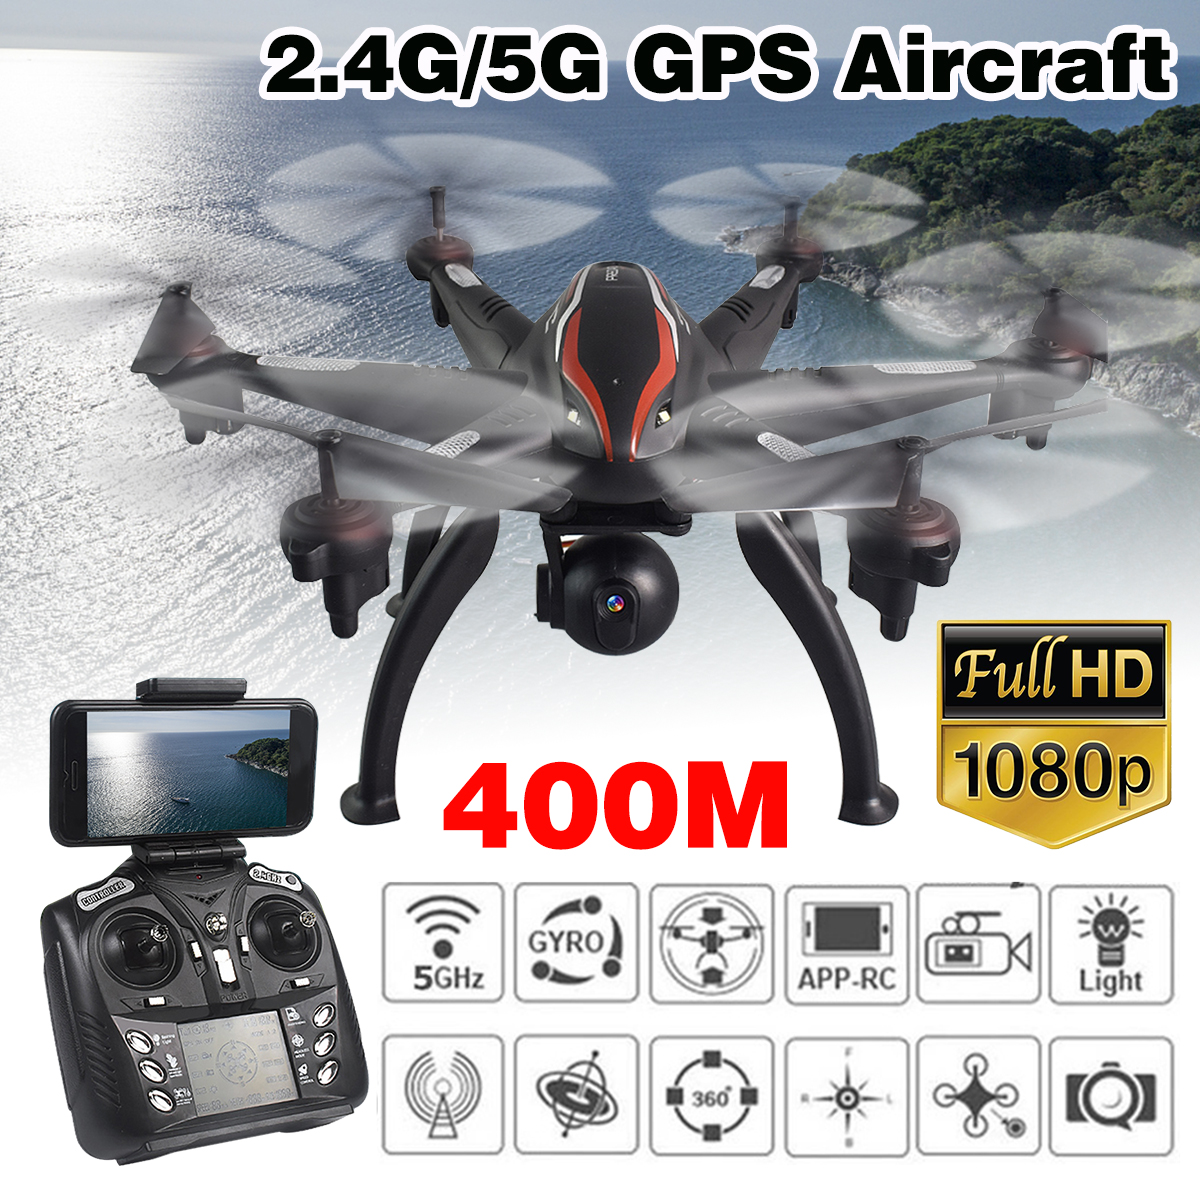 RC Drone GPS 5G WiFi 1080P Camera Smart Follow Mode 6 Axis Gyro Quadcopter Professional 5G WiFi Drone Aerial Photography remote control charging helicopter